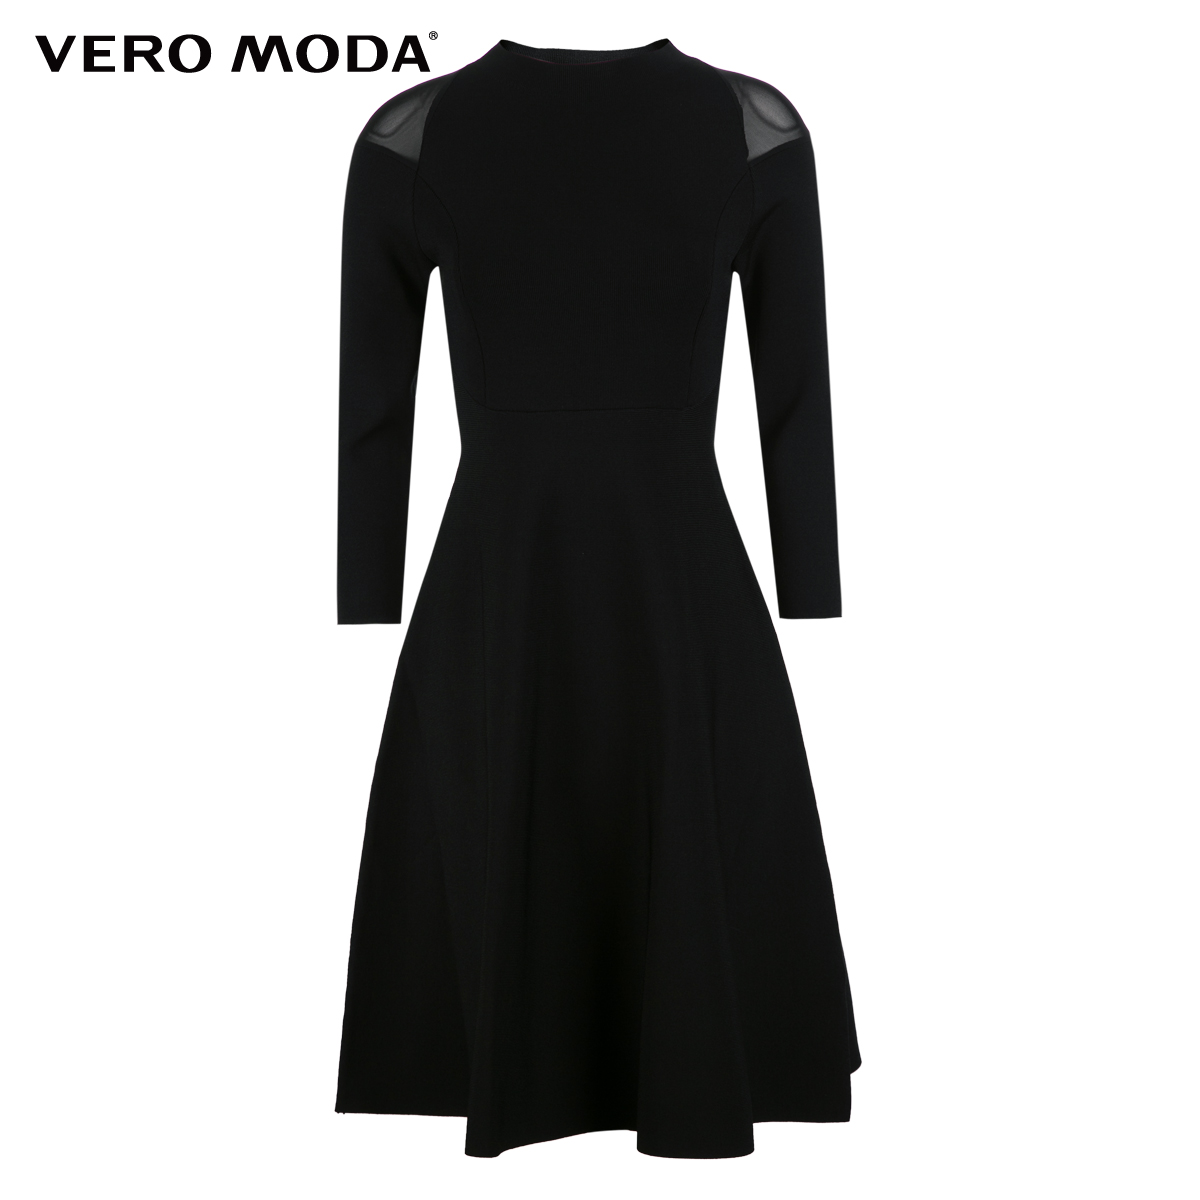 Women's dress VERO MODA 316346530 VeroModa2016